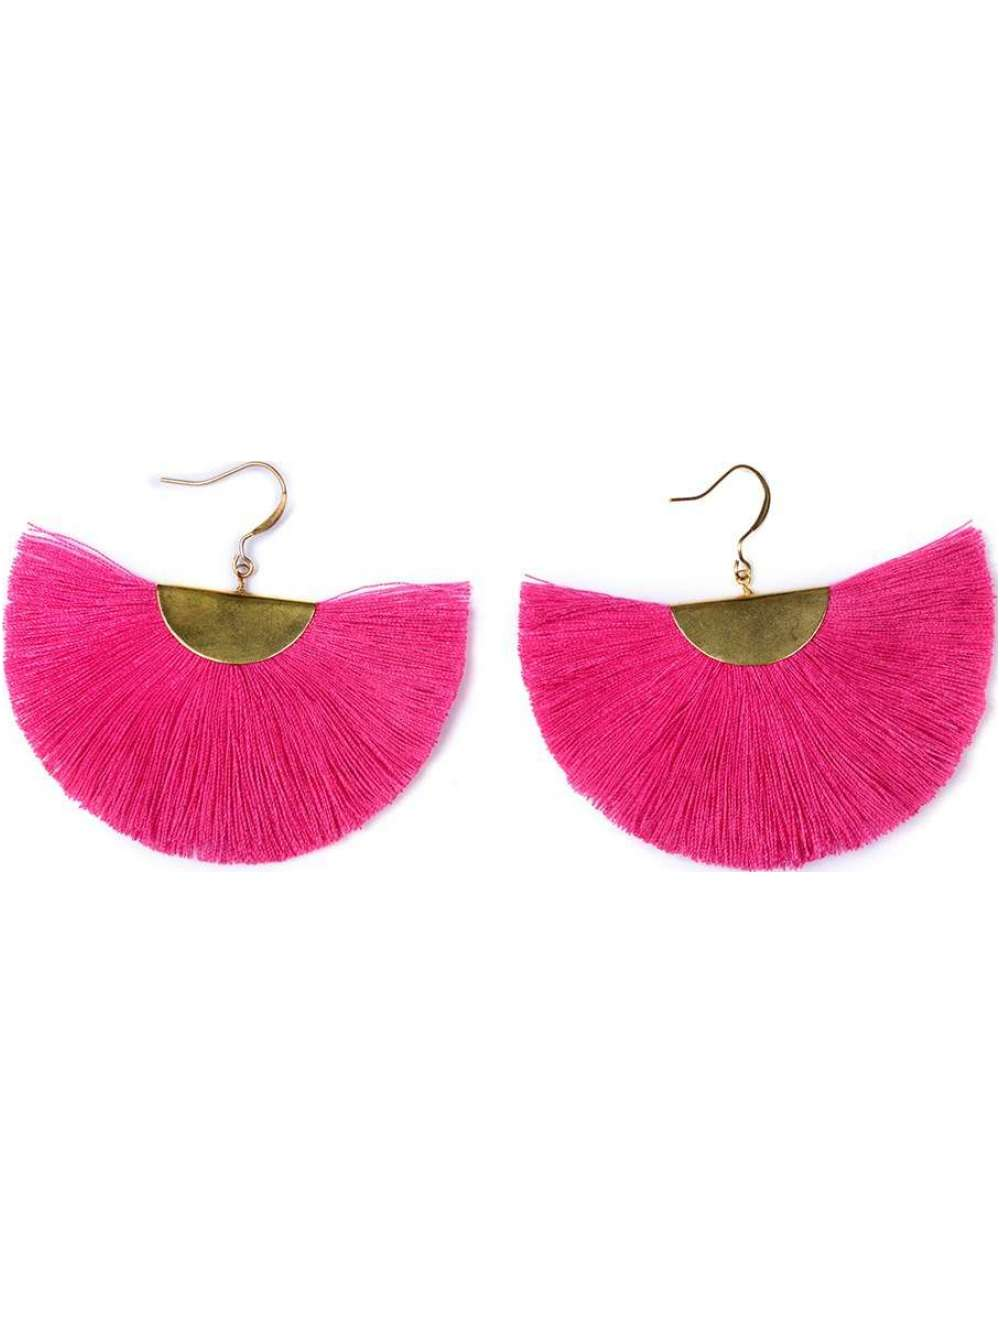 Pink Fringe Earrings - Cause-ology